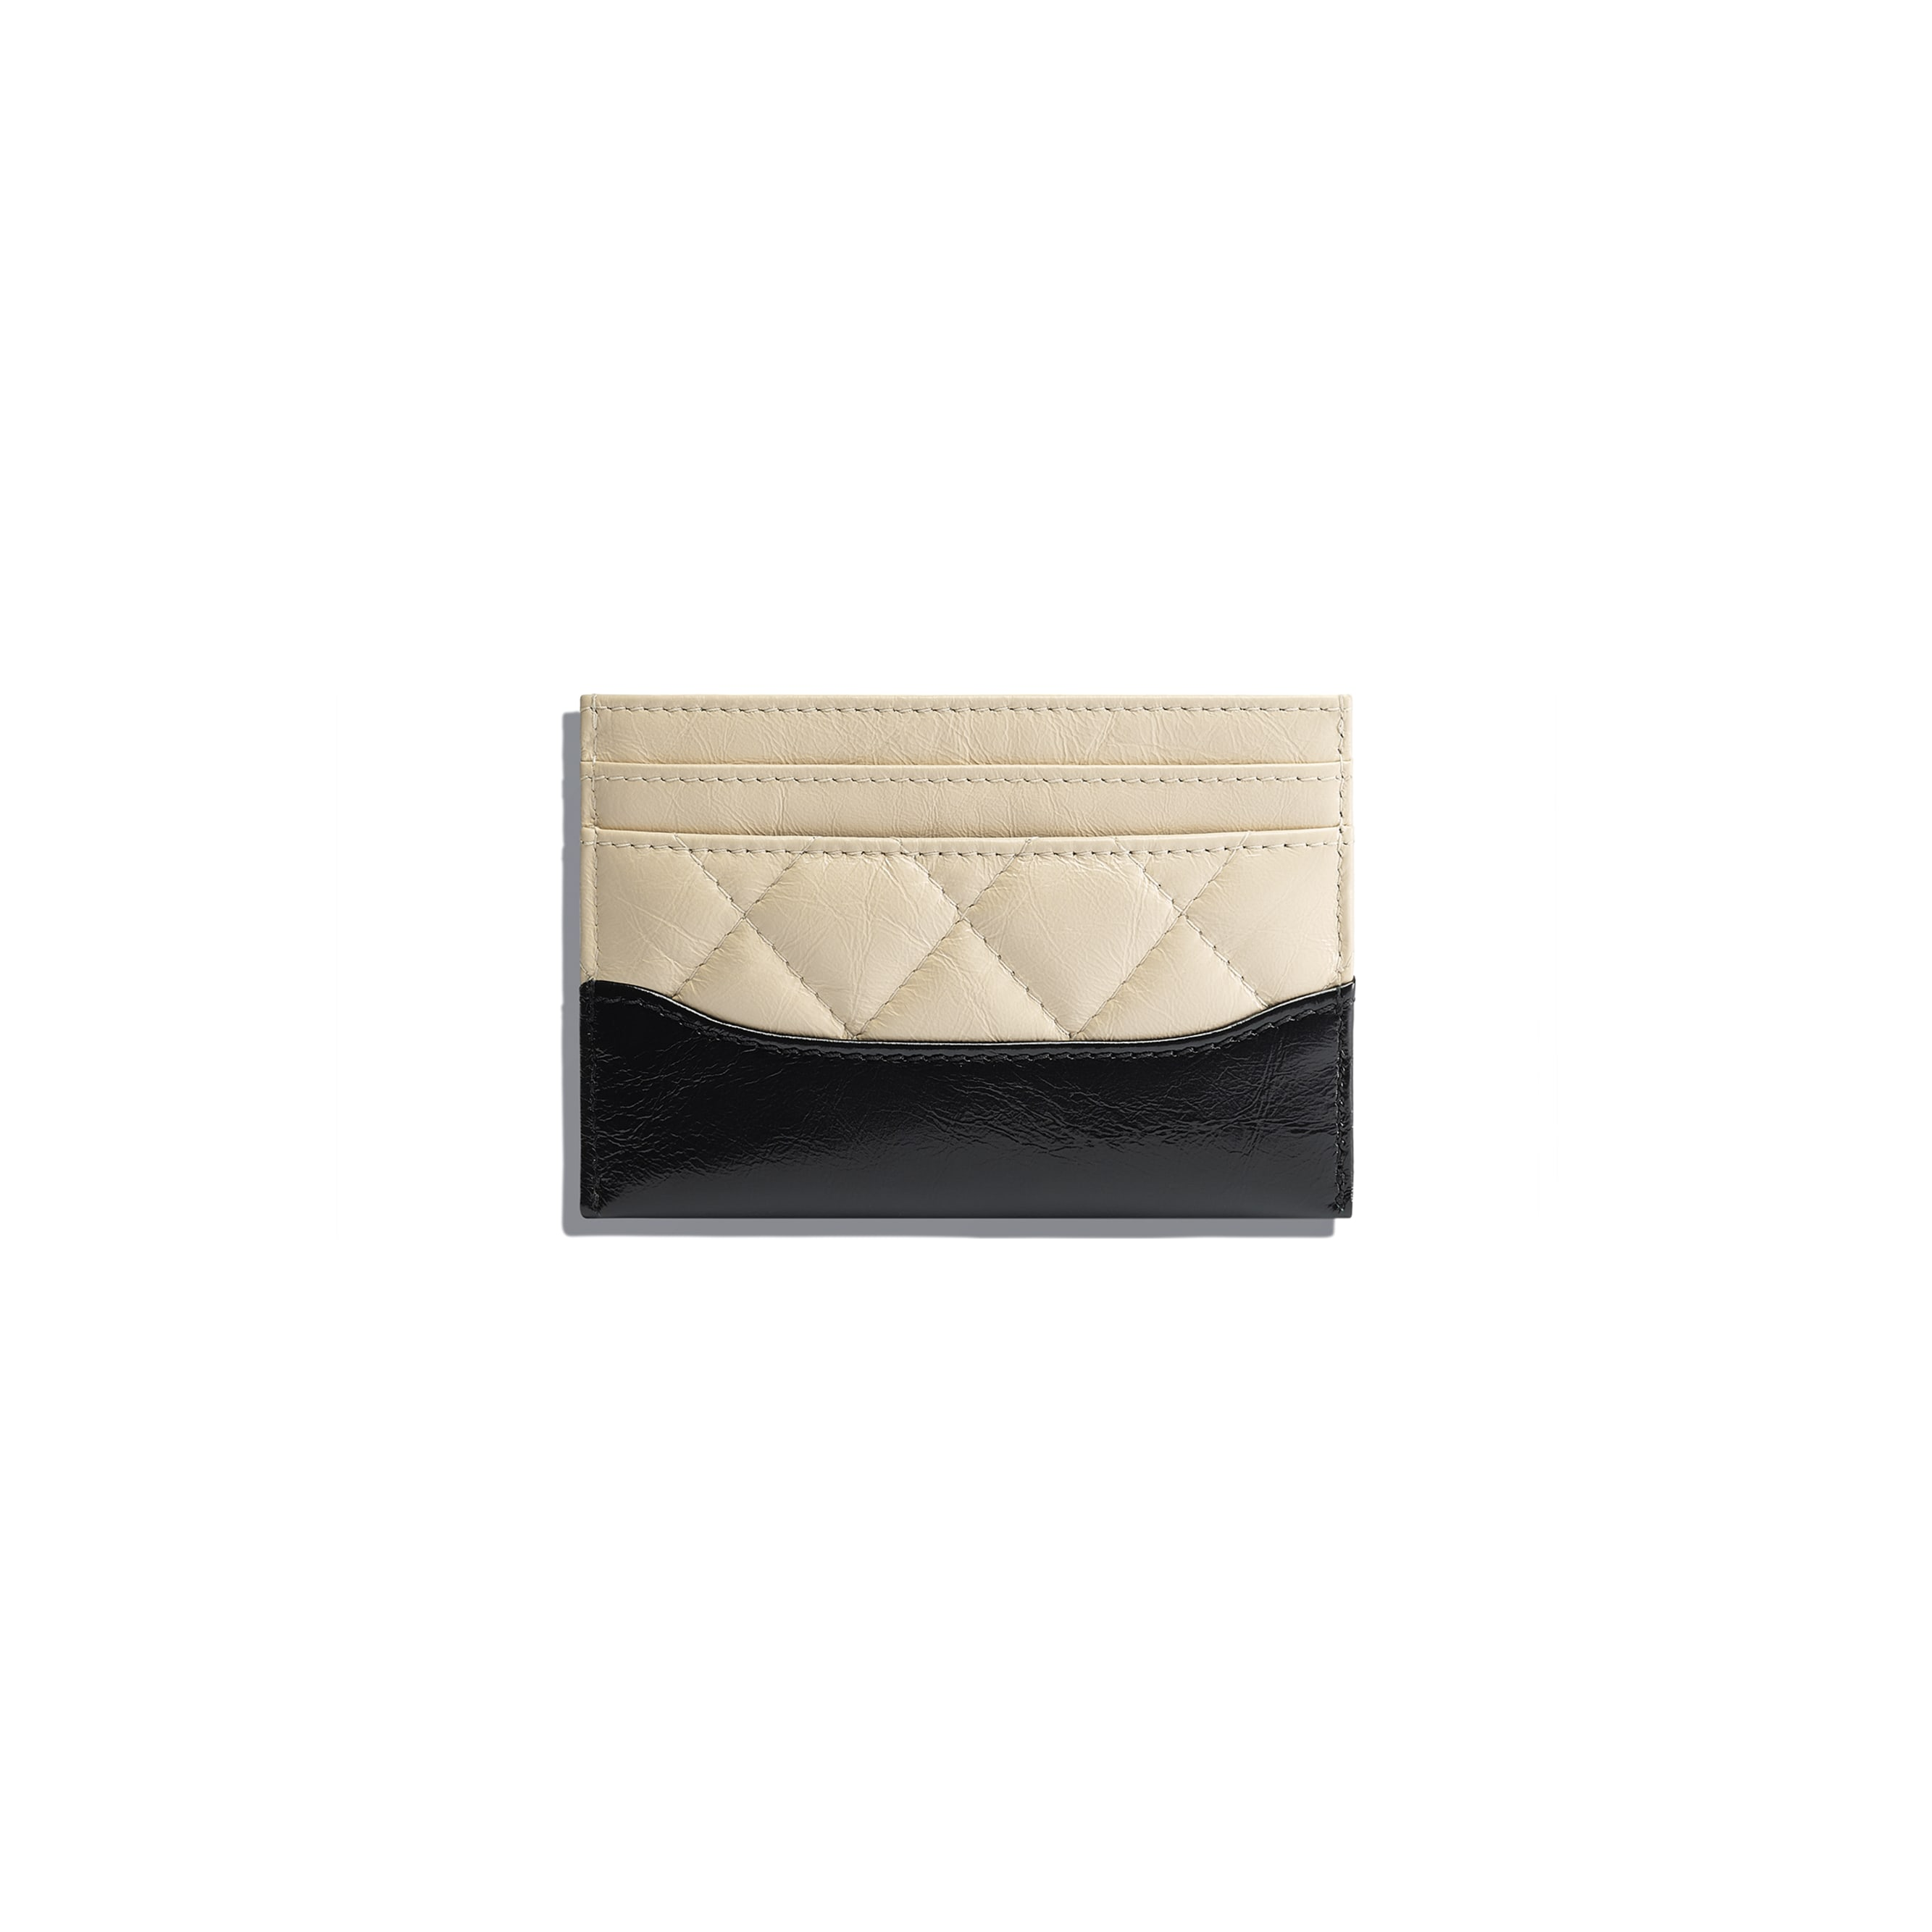 Card Holder - Beige & Black - Aged Calfskin, Smooth Calfskin, Silver-Tone & Gold-Tone Metal - Alternative view - see standard sized version